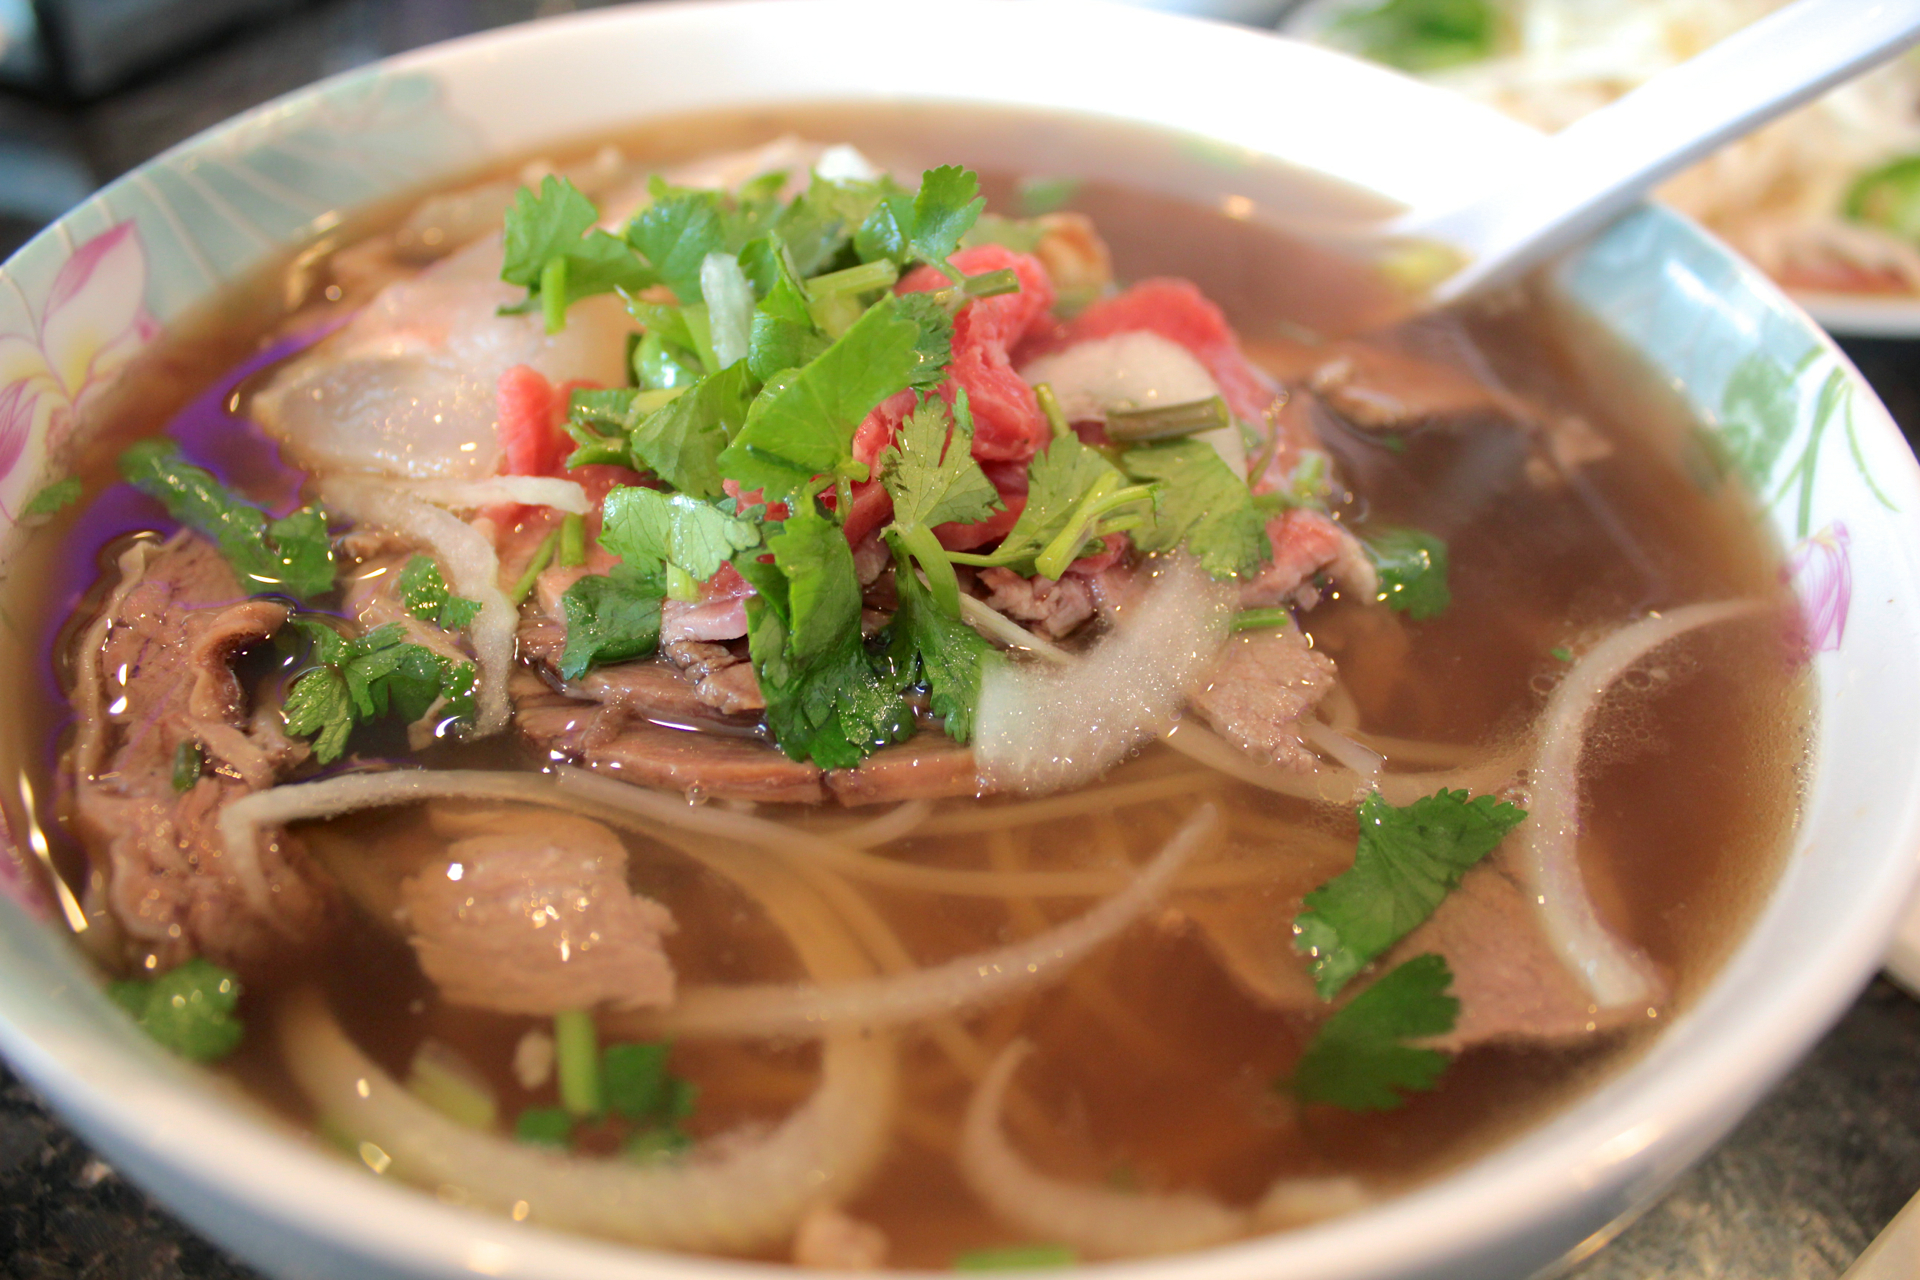 The popular #8 combination pho with rare filet mignon, well-done brisket, flank and tendon.